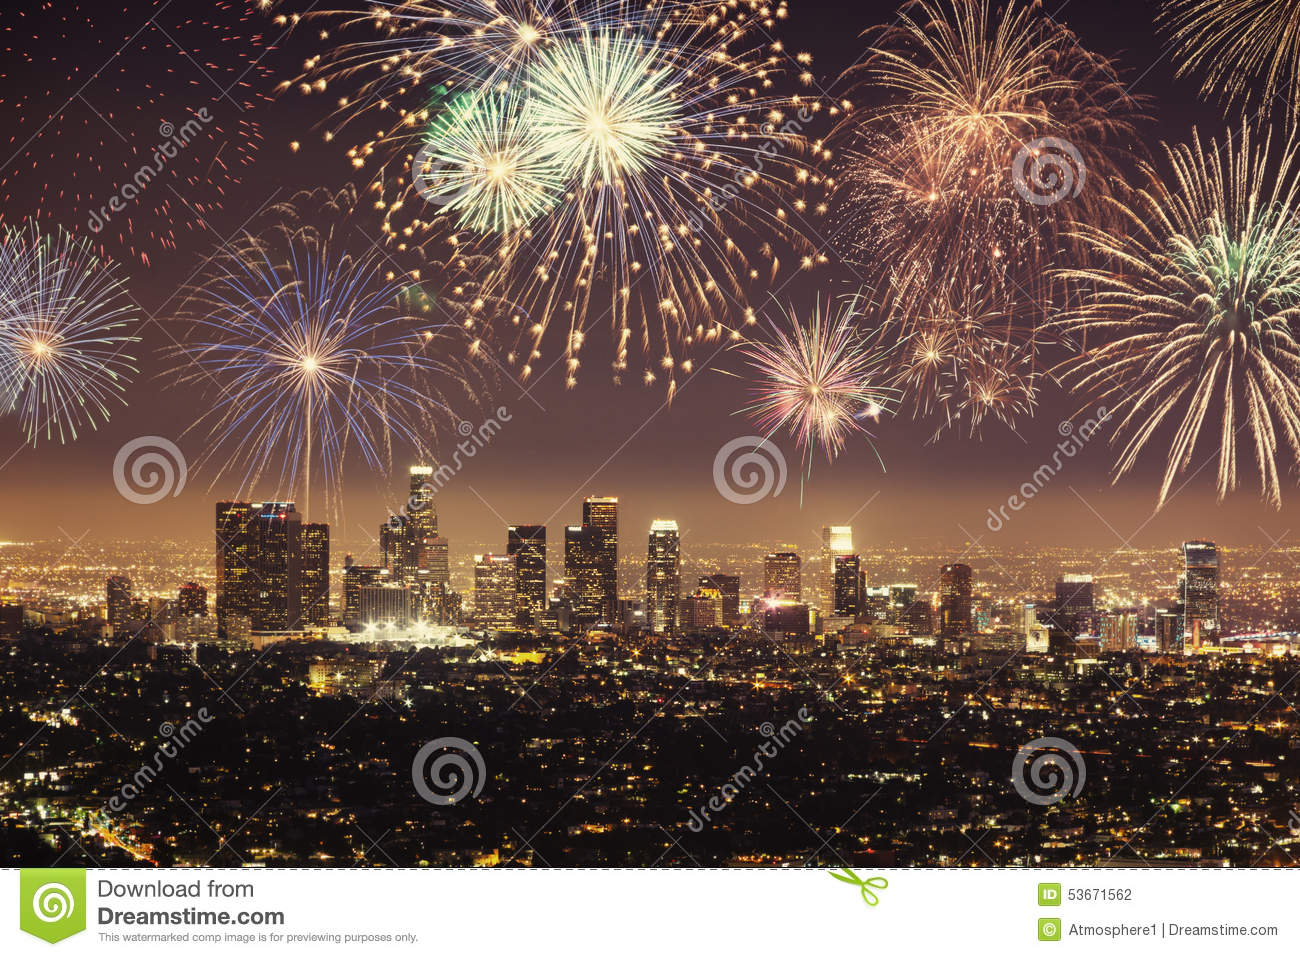 Polaroid of Downtown Los angeles cityscape with fireworks celebrating New Year s Eve.